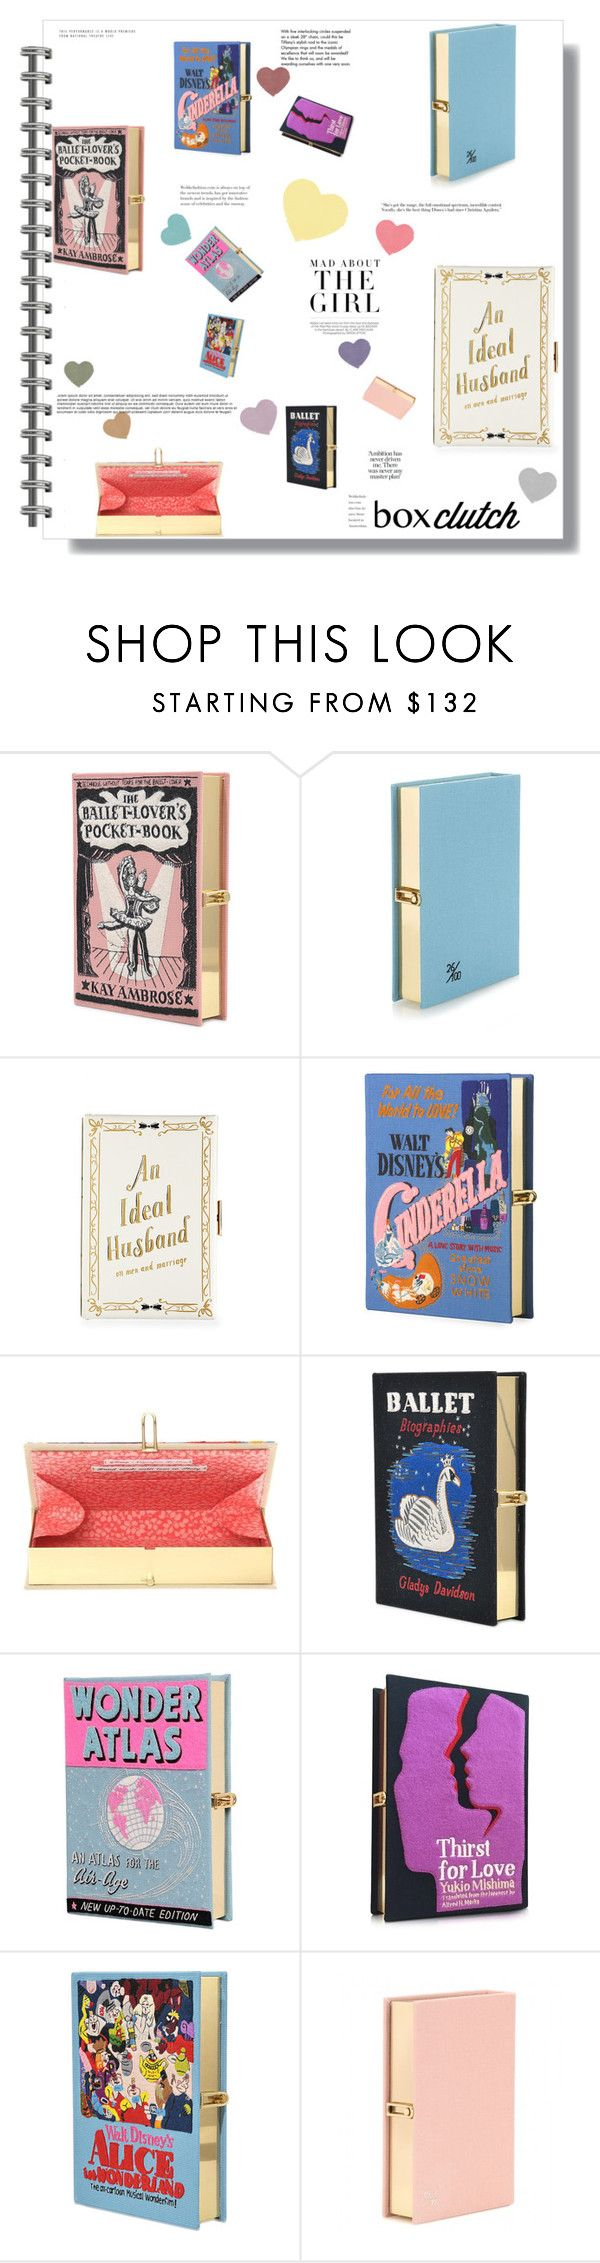 """""""#173 - Pretty Box Clutches"""" by intothenight27 ❤ liked on Polyvore featuring Olympia Le-Tan, Kershaw, Tiffany & Co., women's clothing, women's fashion, women, female, woman, misses and juniors"""